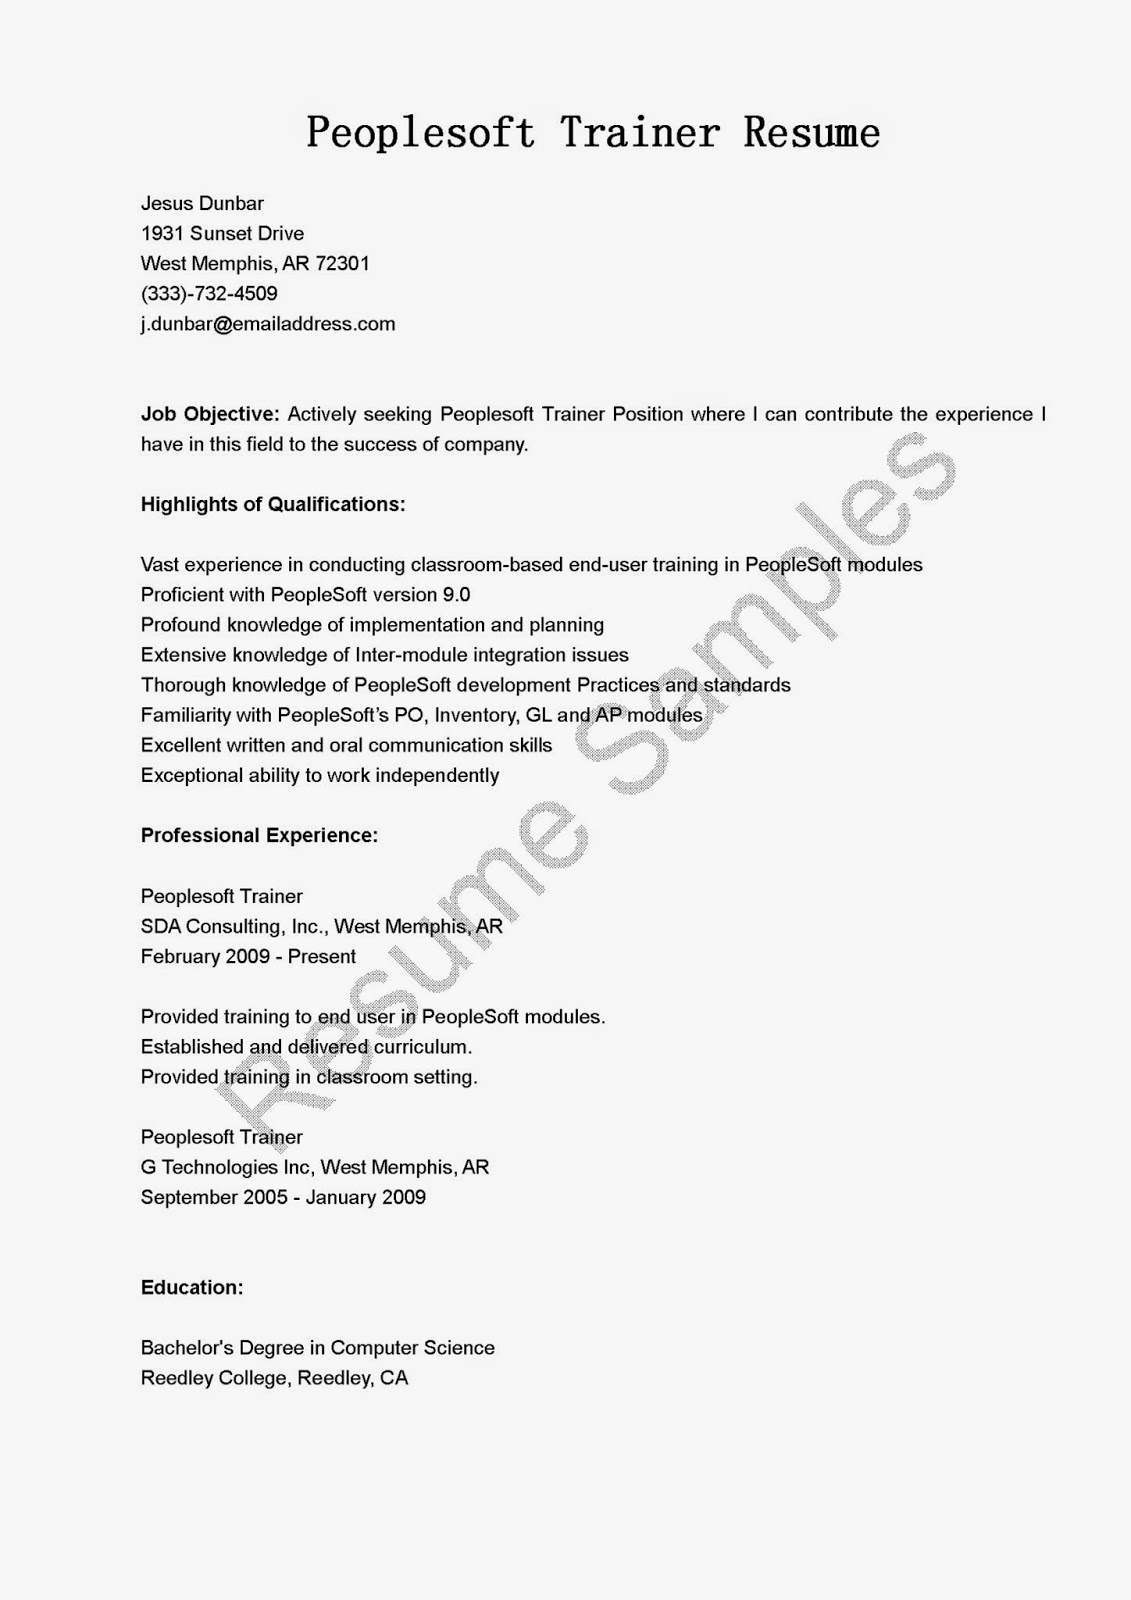 software consultant resume samples visualcv resume samples database - People Soft Consultant Resume